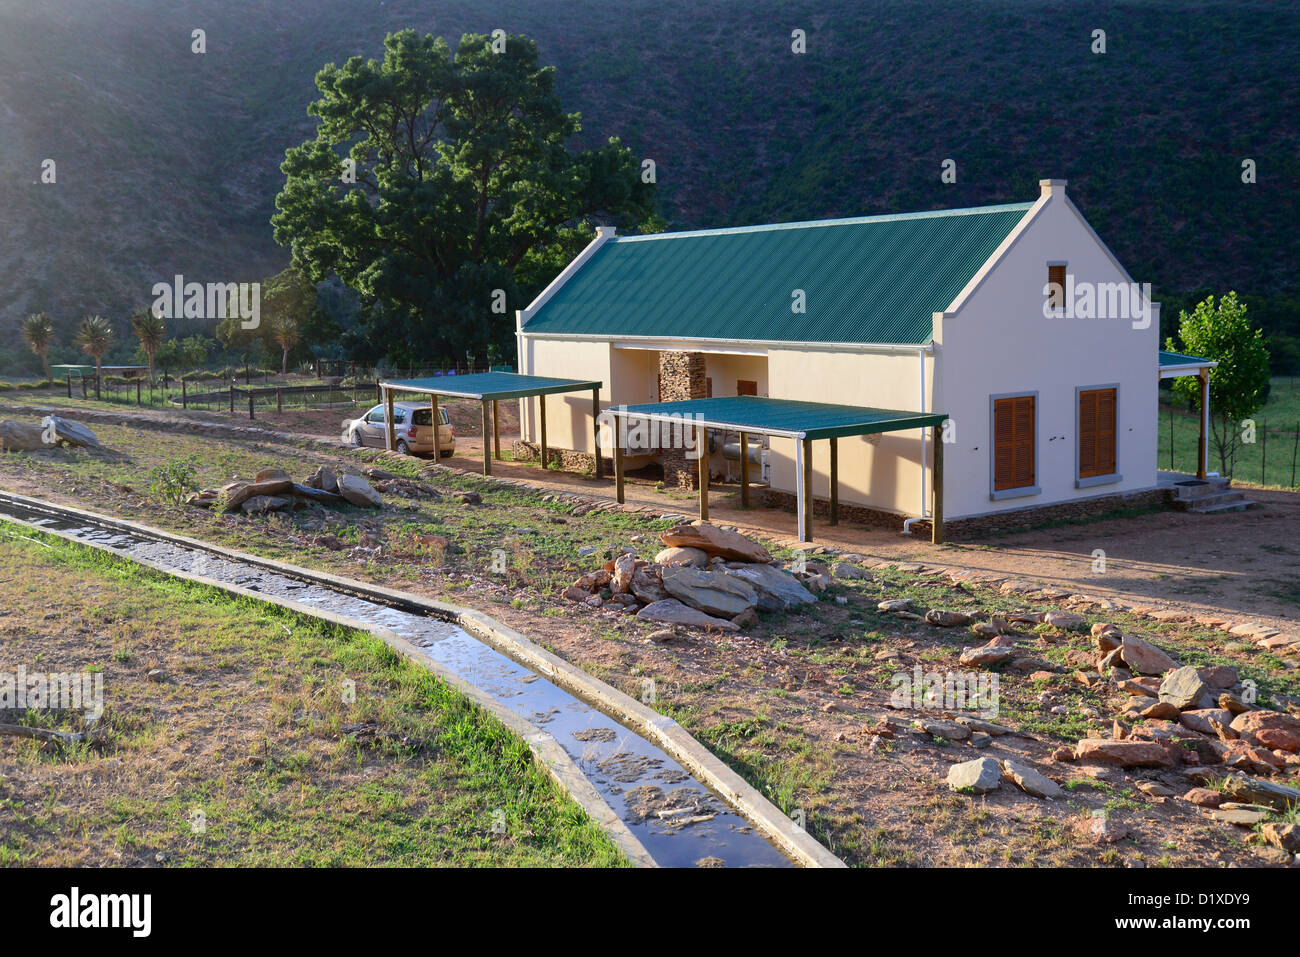 Cape cottage on farm in Klein Karoo, South Africa - Stock Image